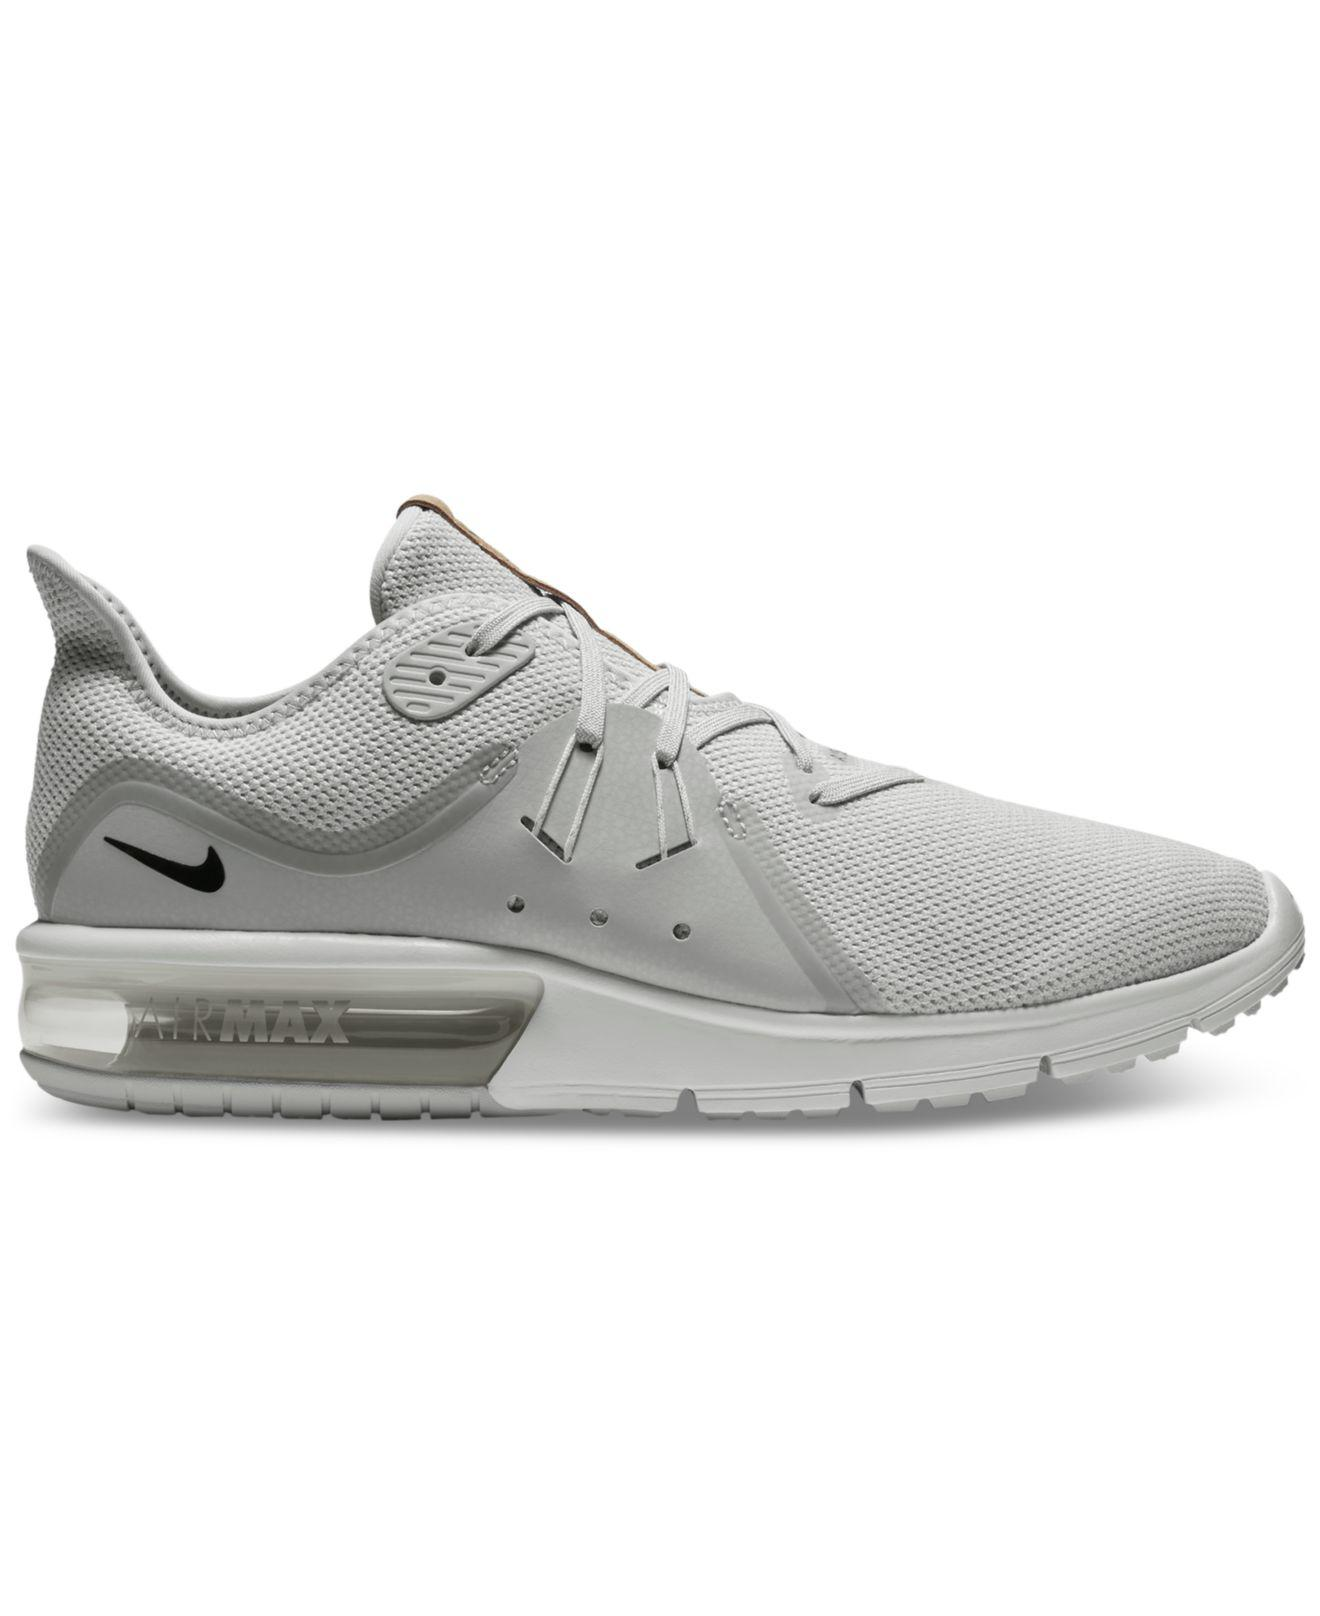 521febe696 Nike Men's Air Max Sequent 3 Running Sneakers From Finish Line for ...